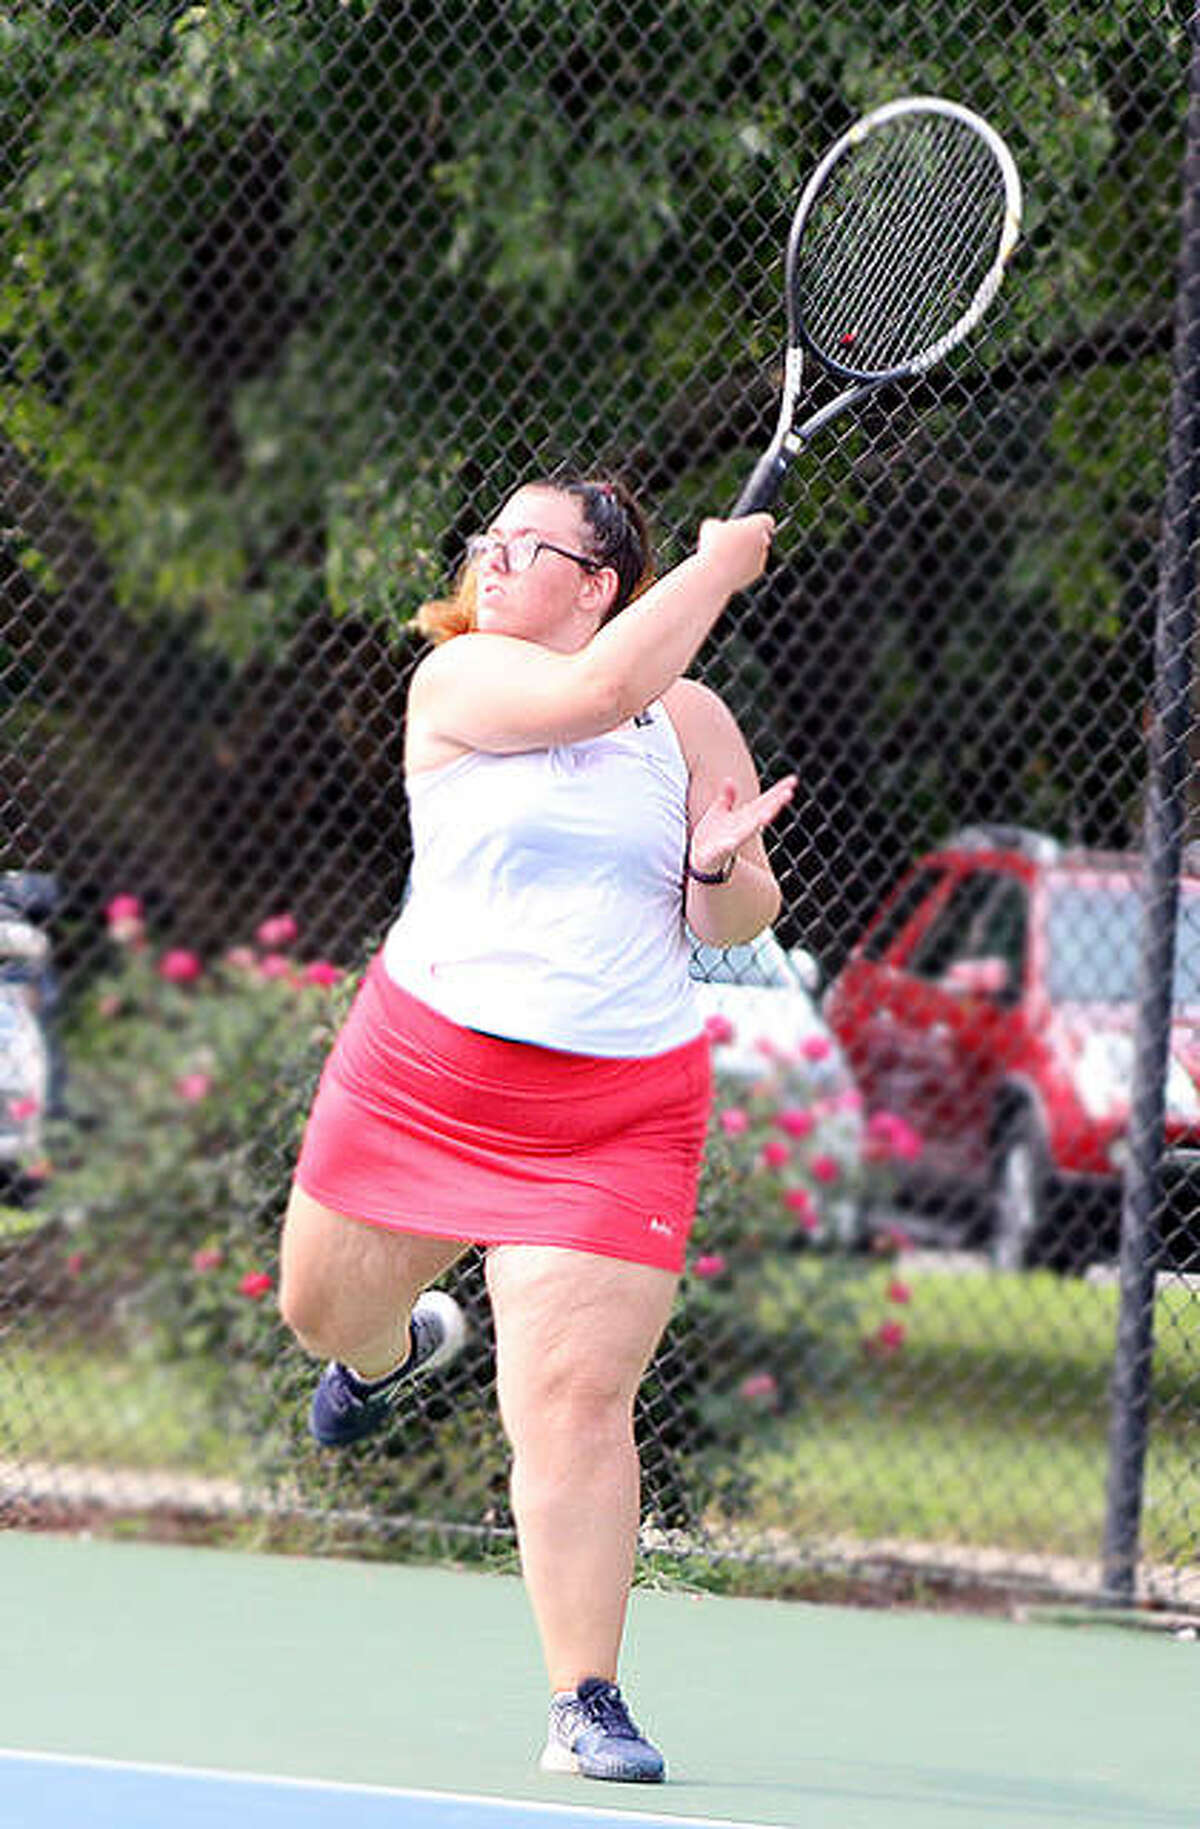 Alton's Lydia Criveau goes high to make a return in her match against Marquette's Monica Wendel Monday at the Simpson Tennis Center.